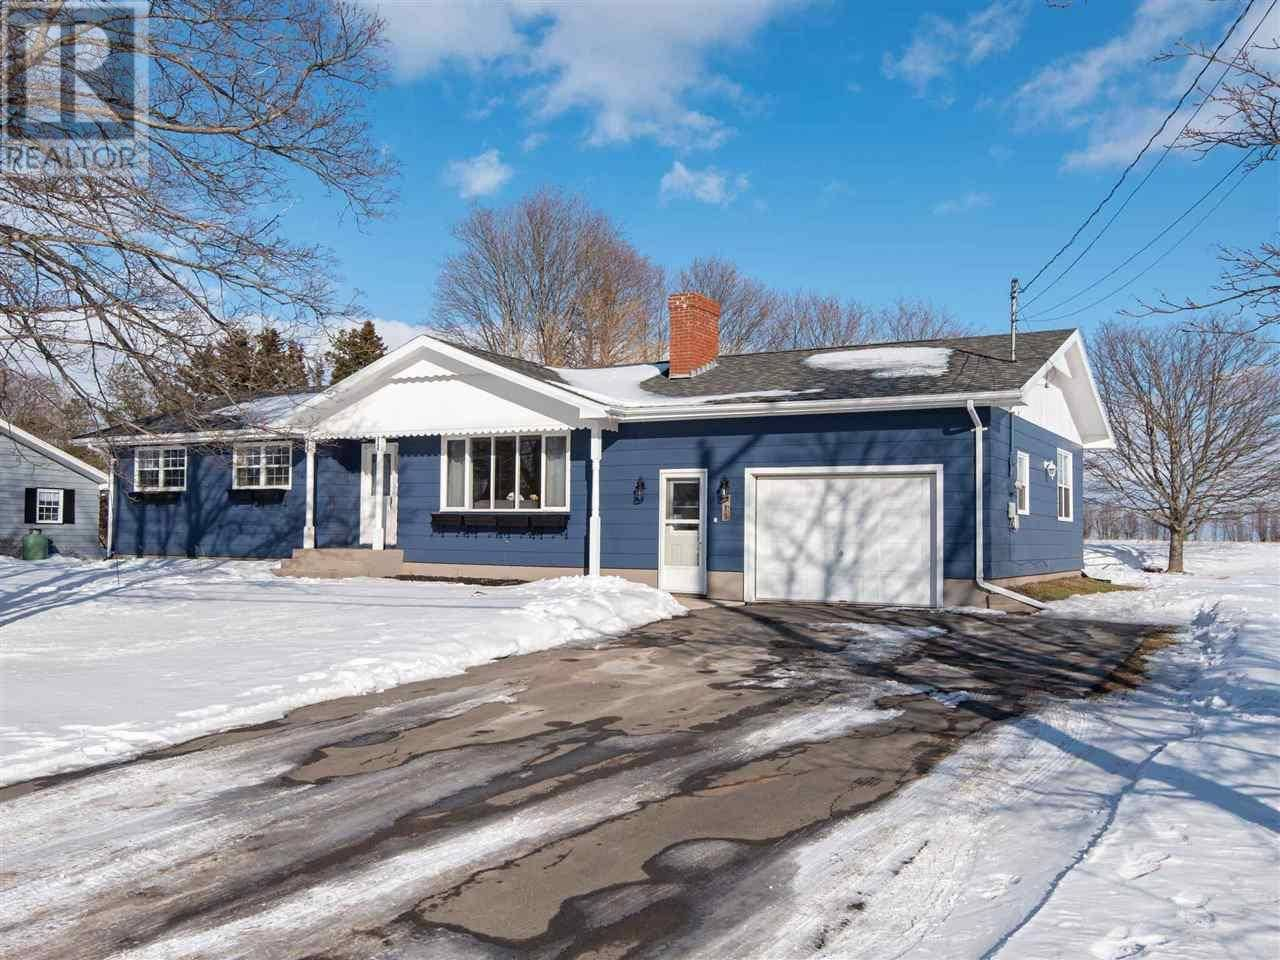 House for sale at 159 Mason Rd Stratford Prince Edward Island - MLS: 202002002